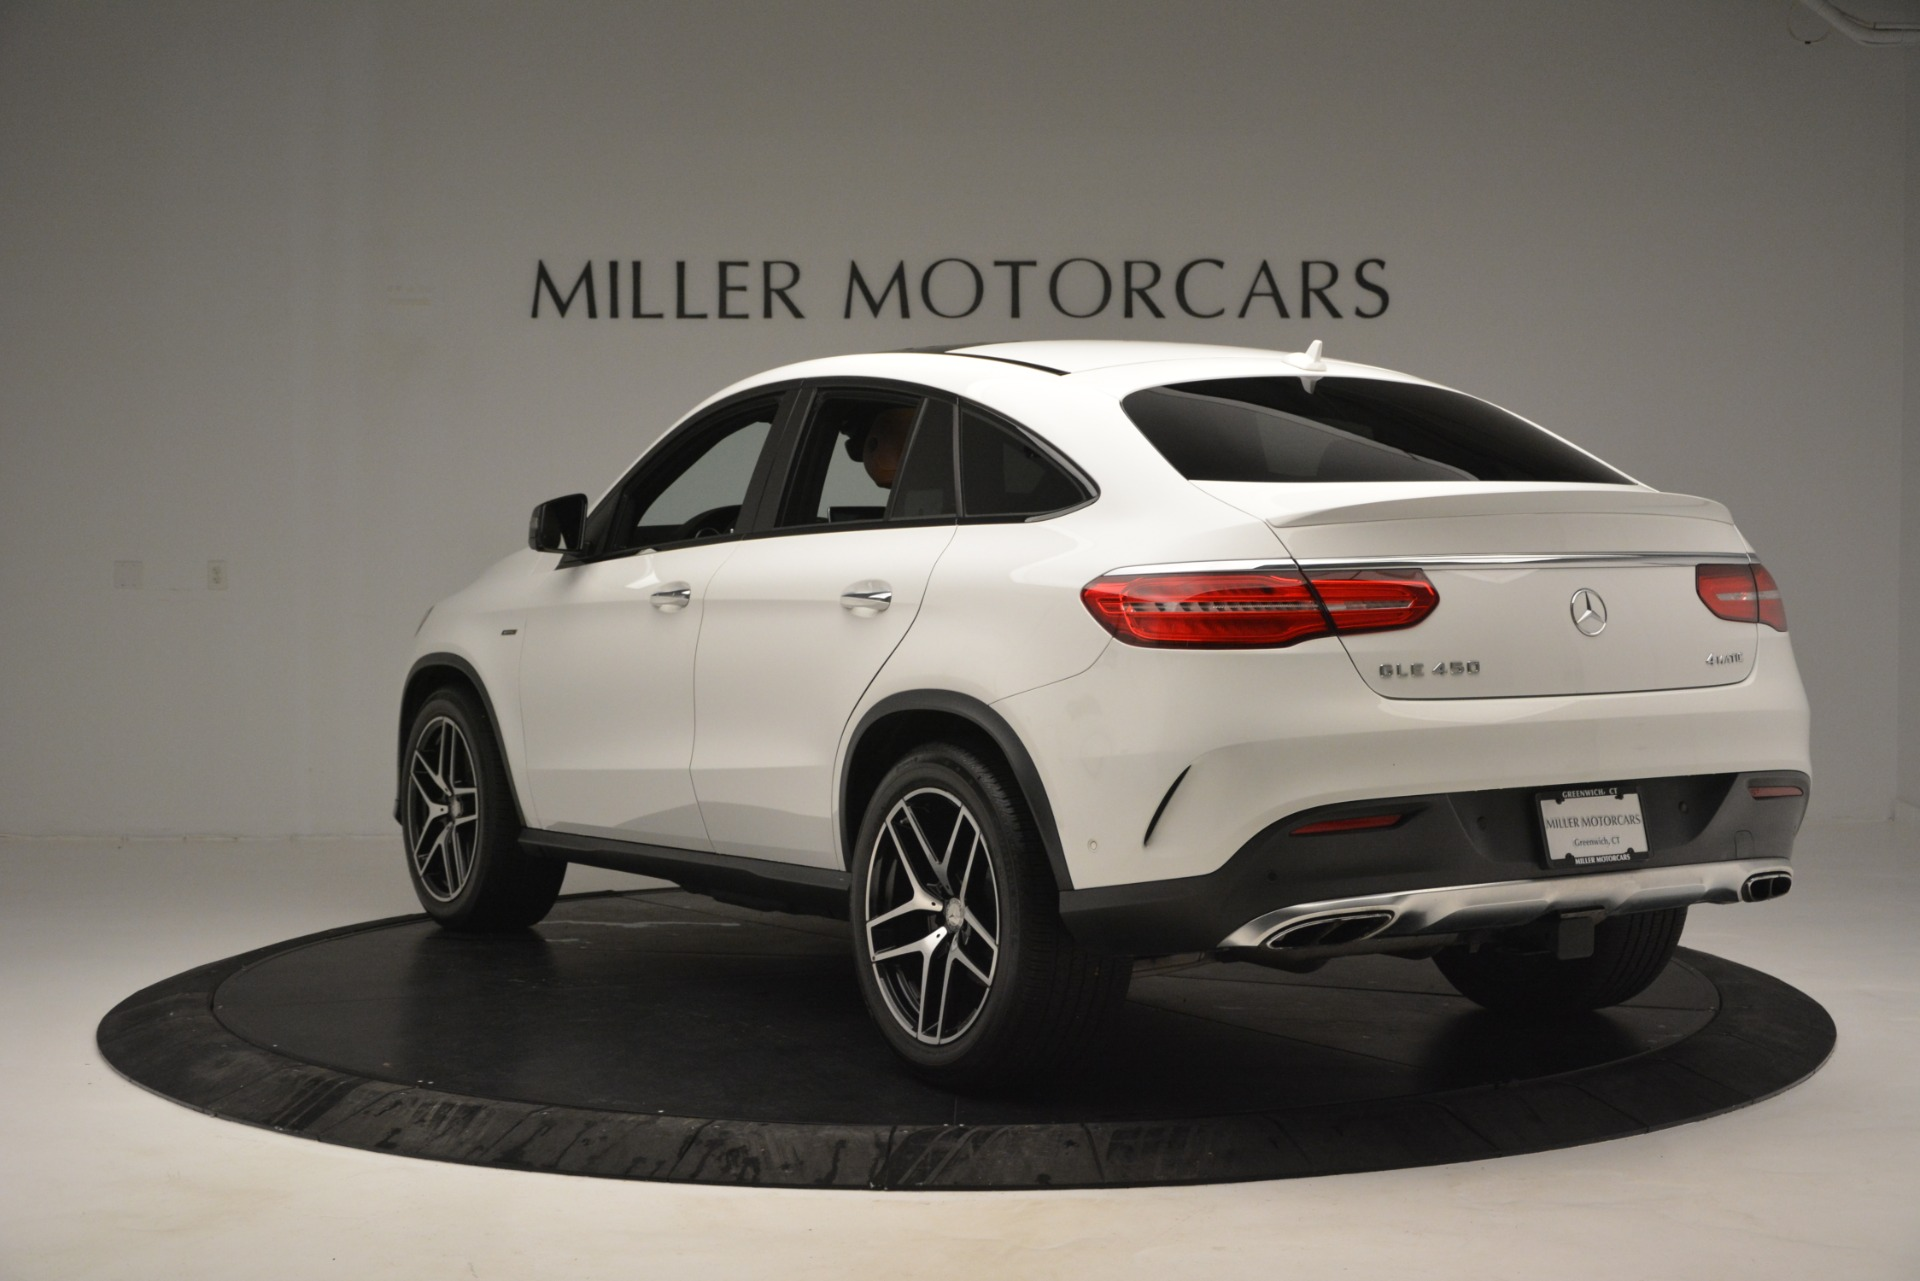 Used 2016 Mercedes-Benz GLE 450 AMG Coupe 4MATIC For Sale In Westport, CT 2787_p5